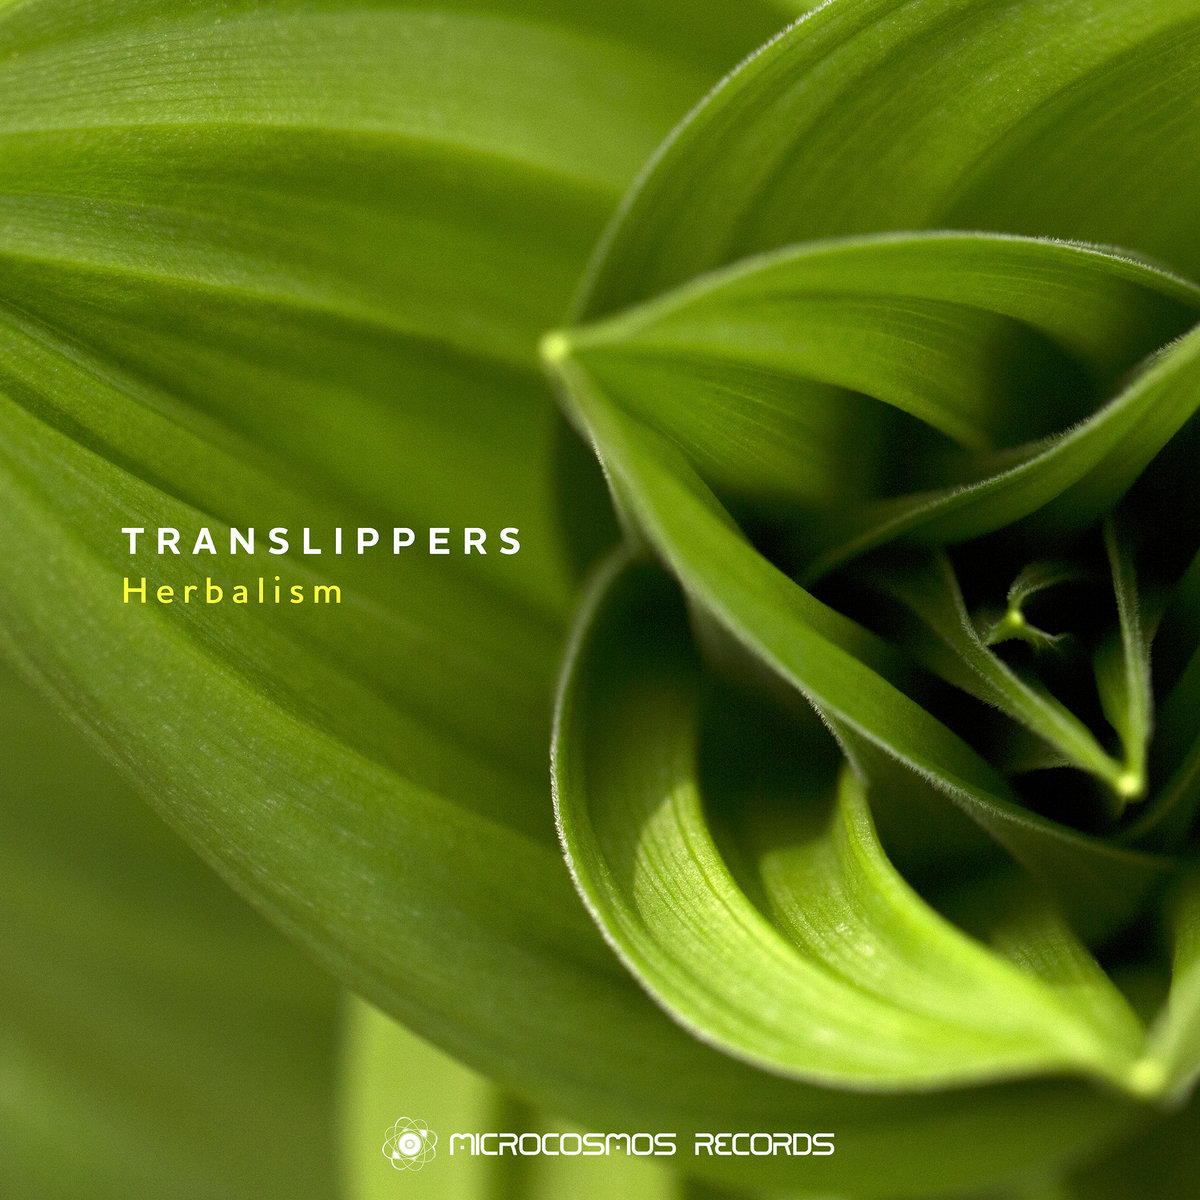 Translippers - Summerlove @ 'Herbalism' album (ambient, chill-out)